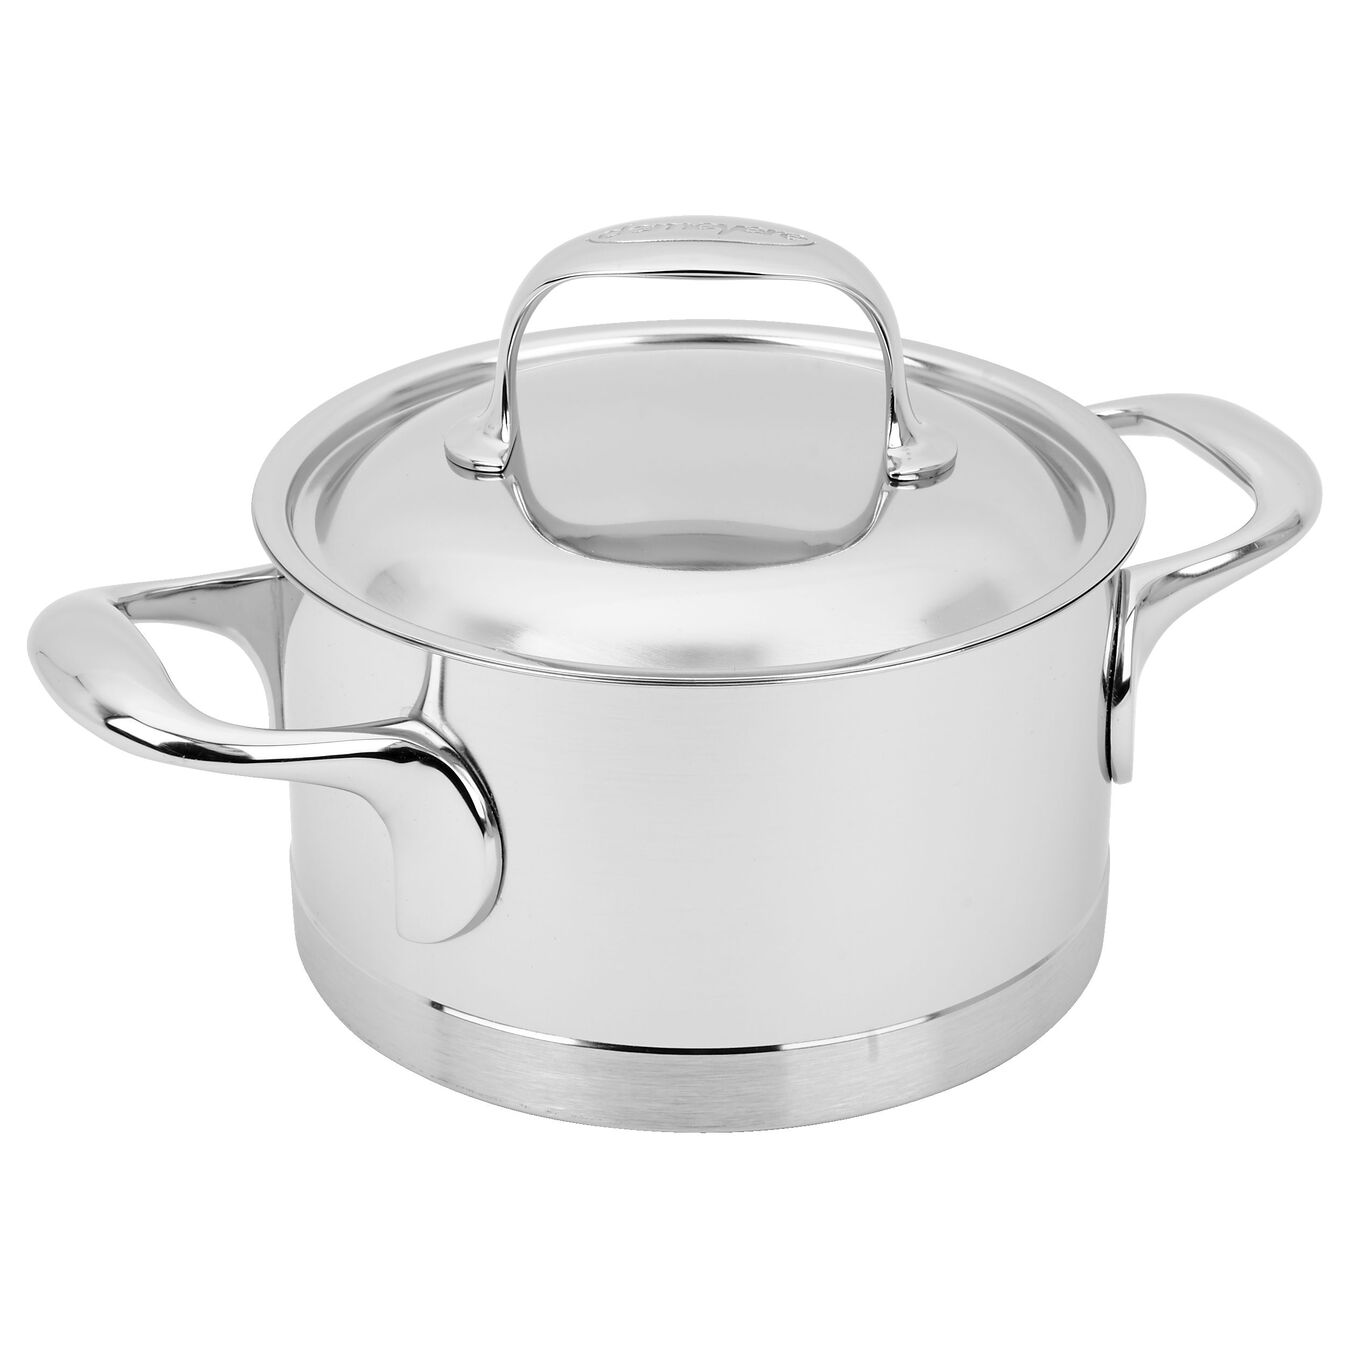 1,5 l 18/10 Stainless Steel Faitout with lid,,large 1